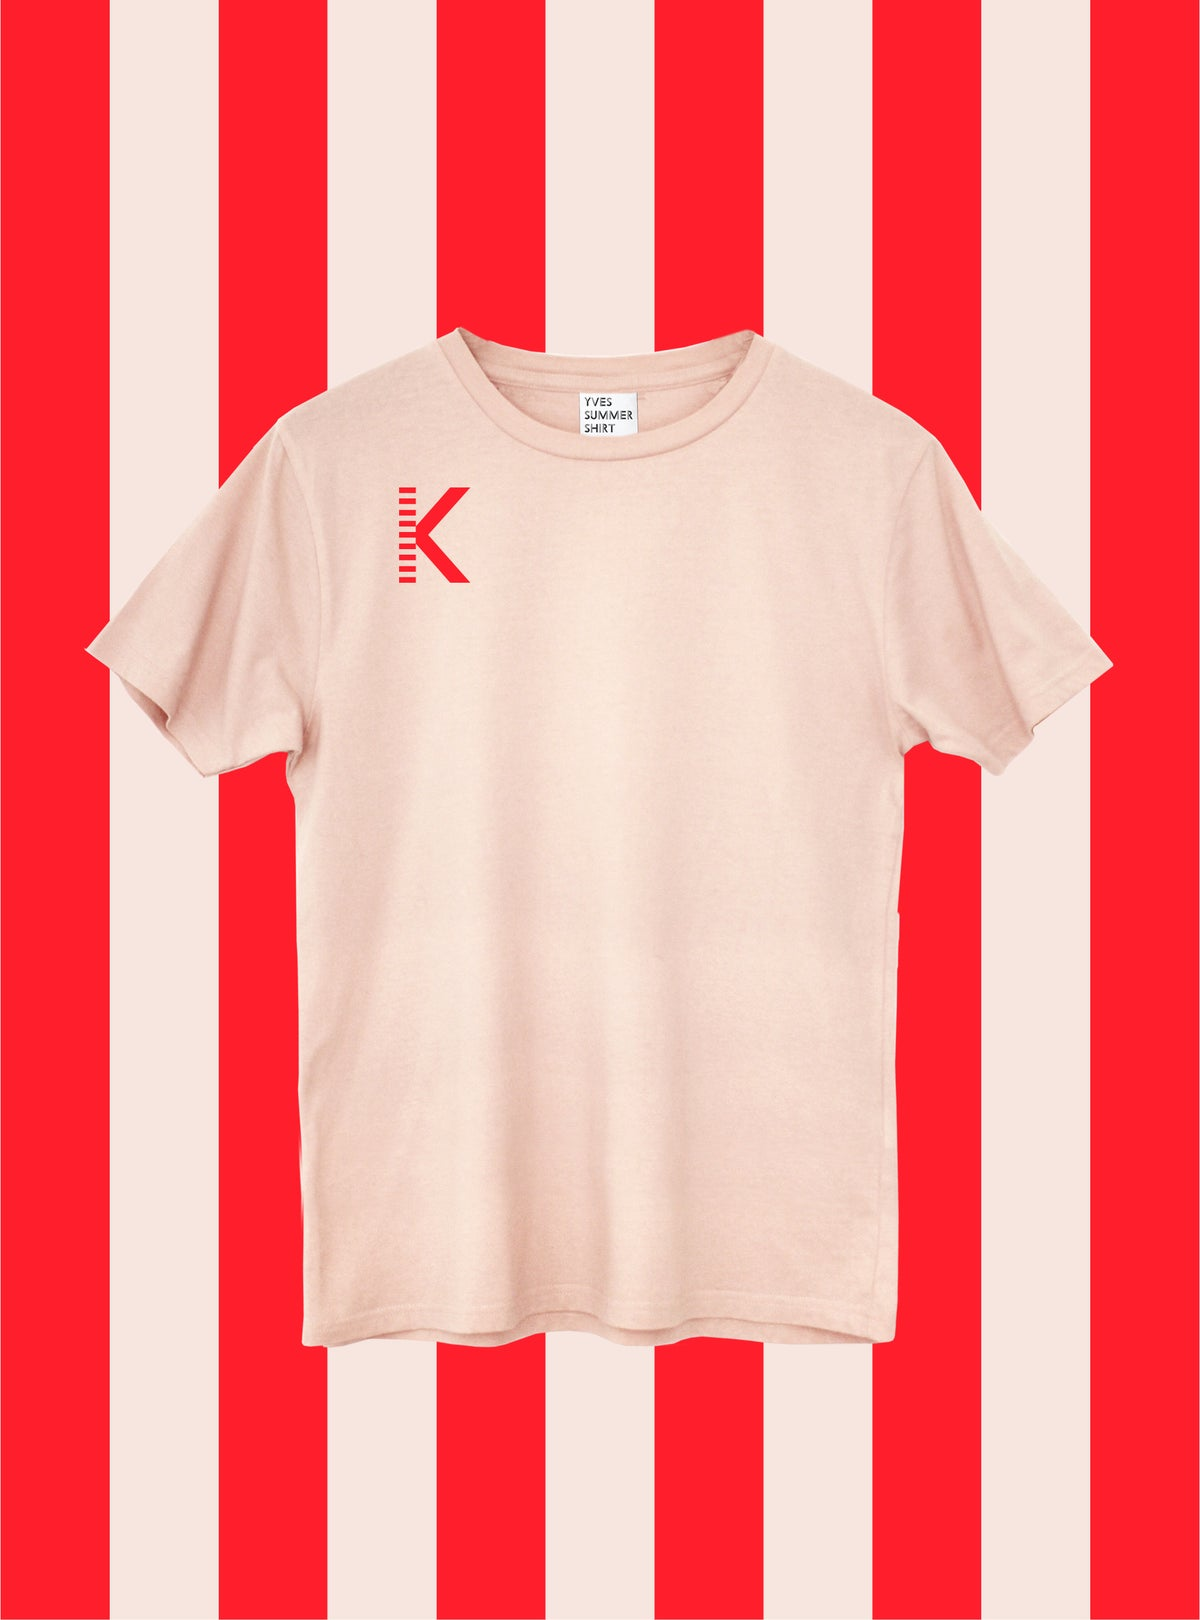 Image of K Summer Shirt